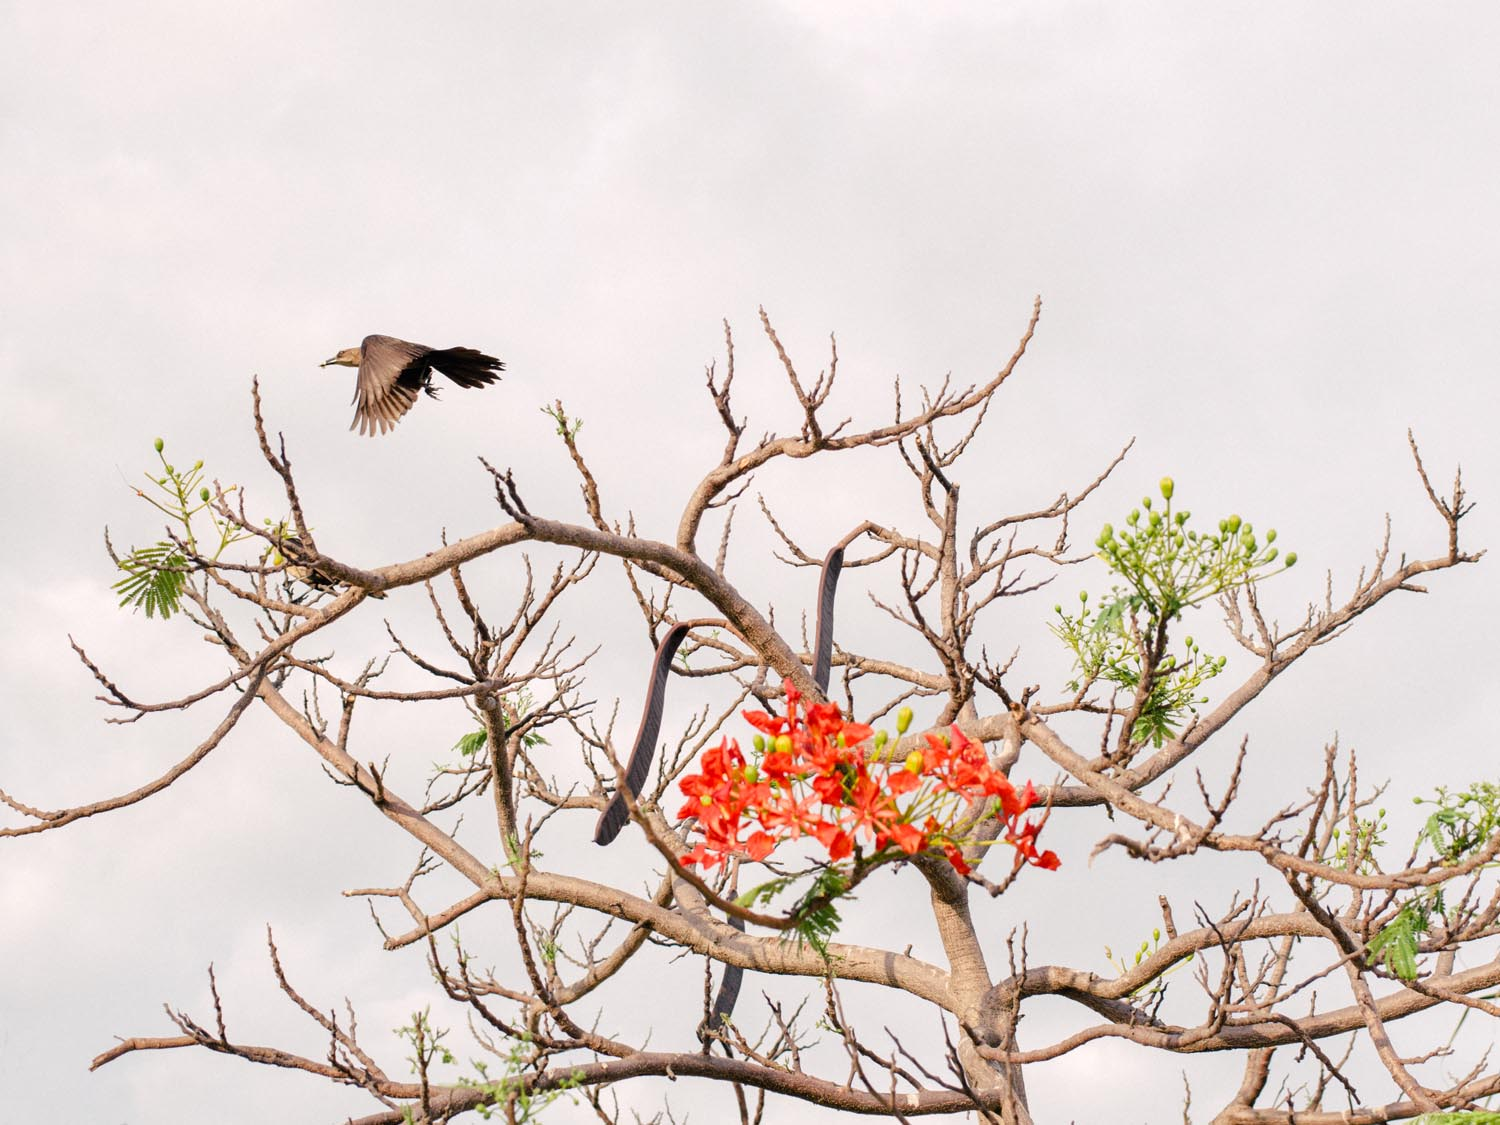 cartagena-colombia-photography-bird.jpg